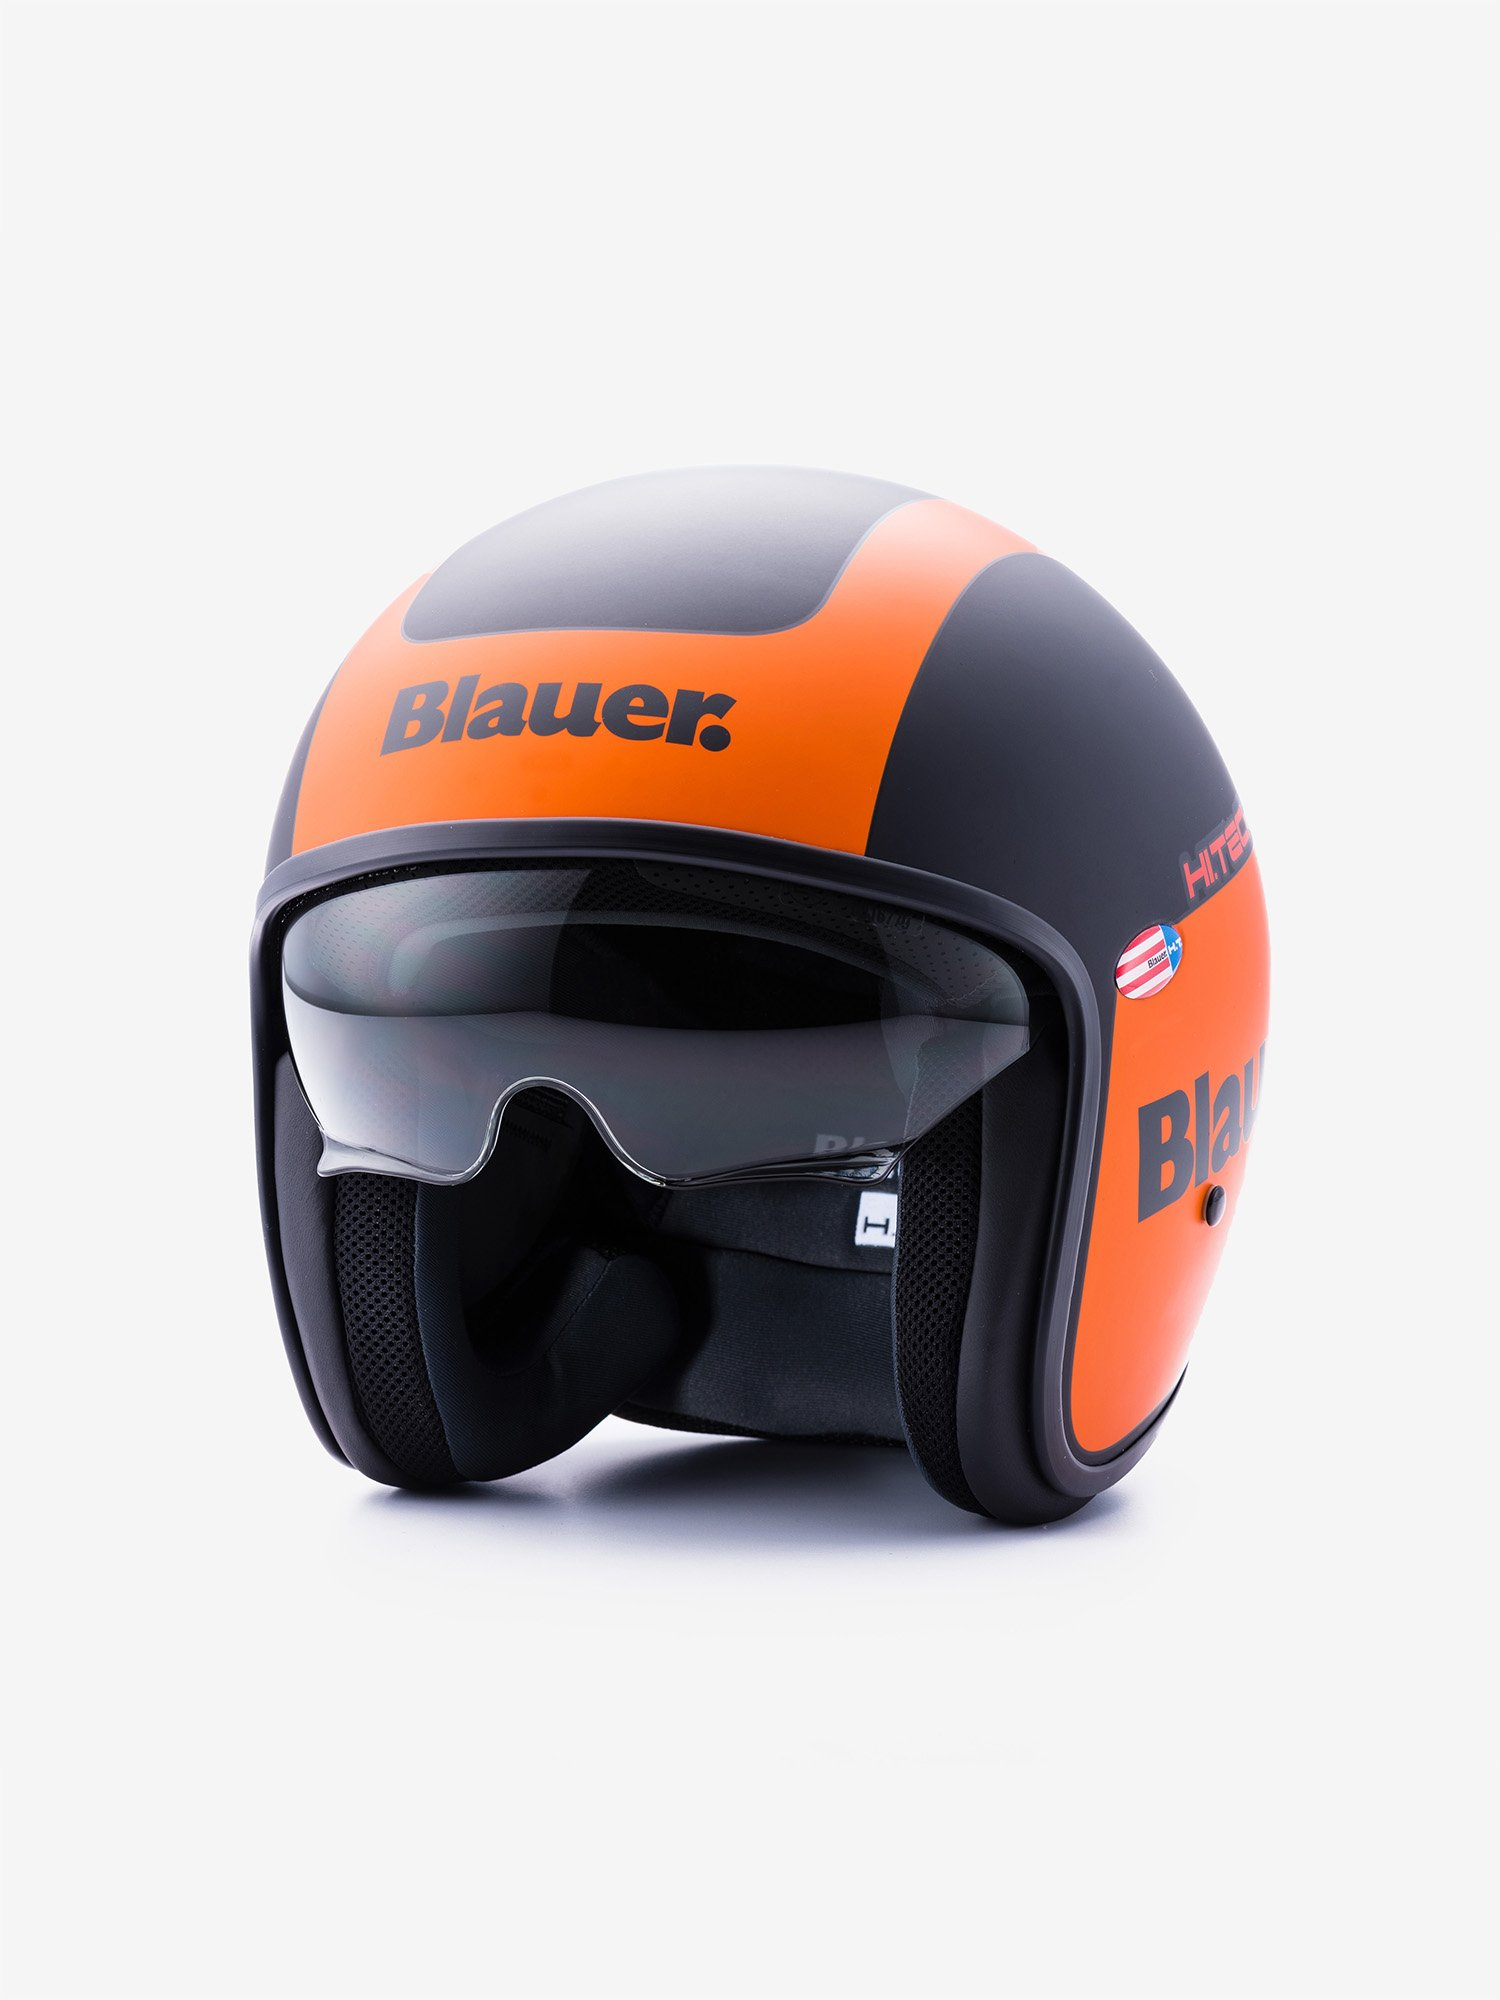 Blauer - PILOT 1.1 BICOLORE OPACO - Black / Orange Matt - Blauer